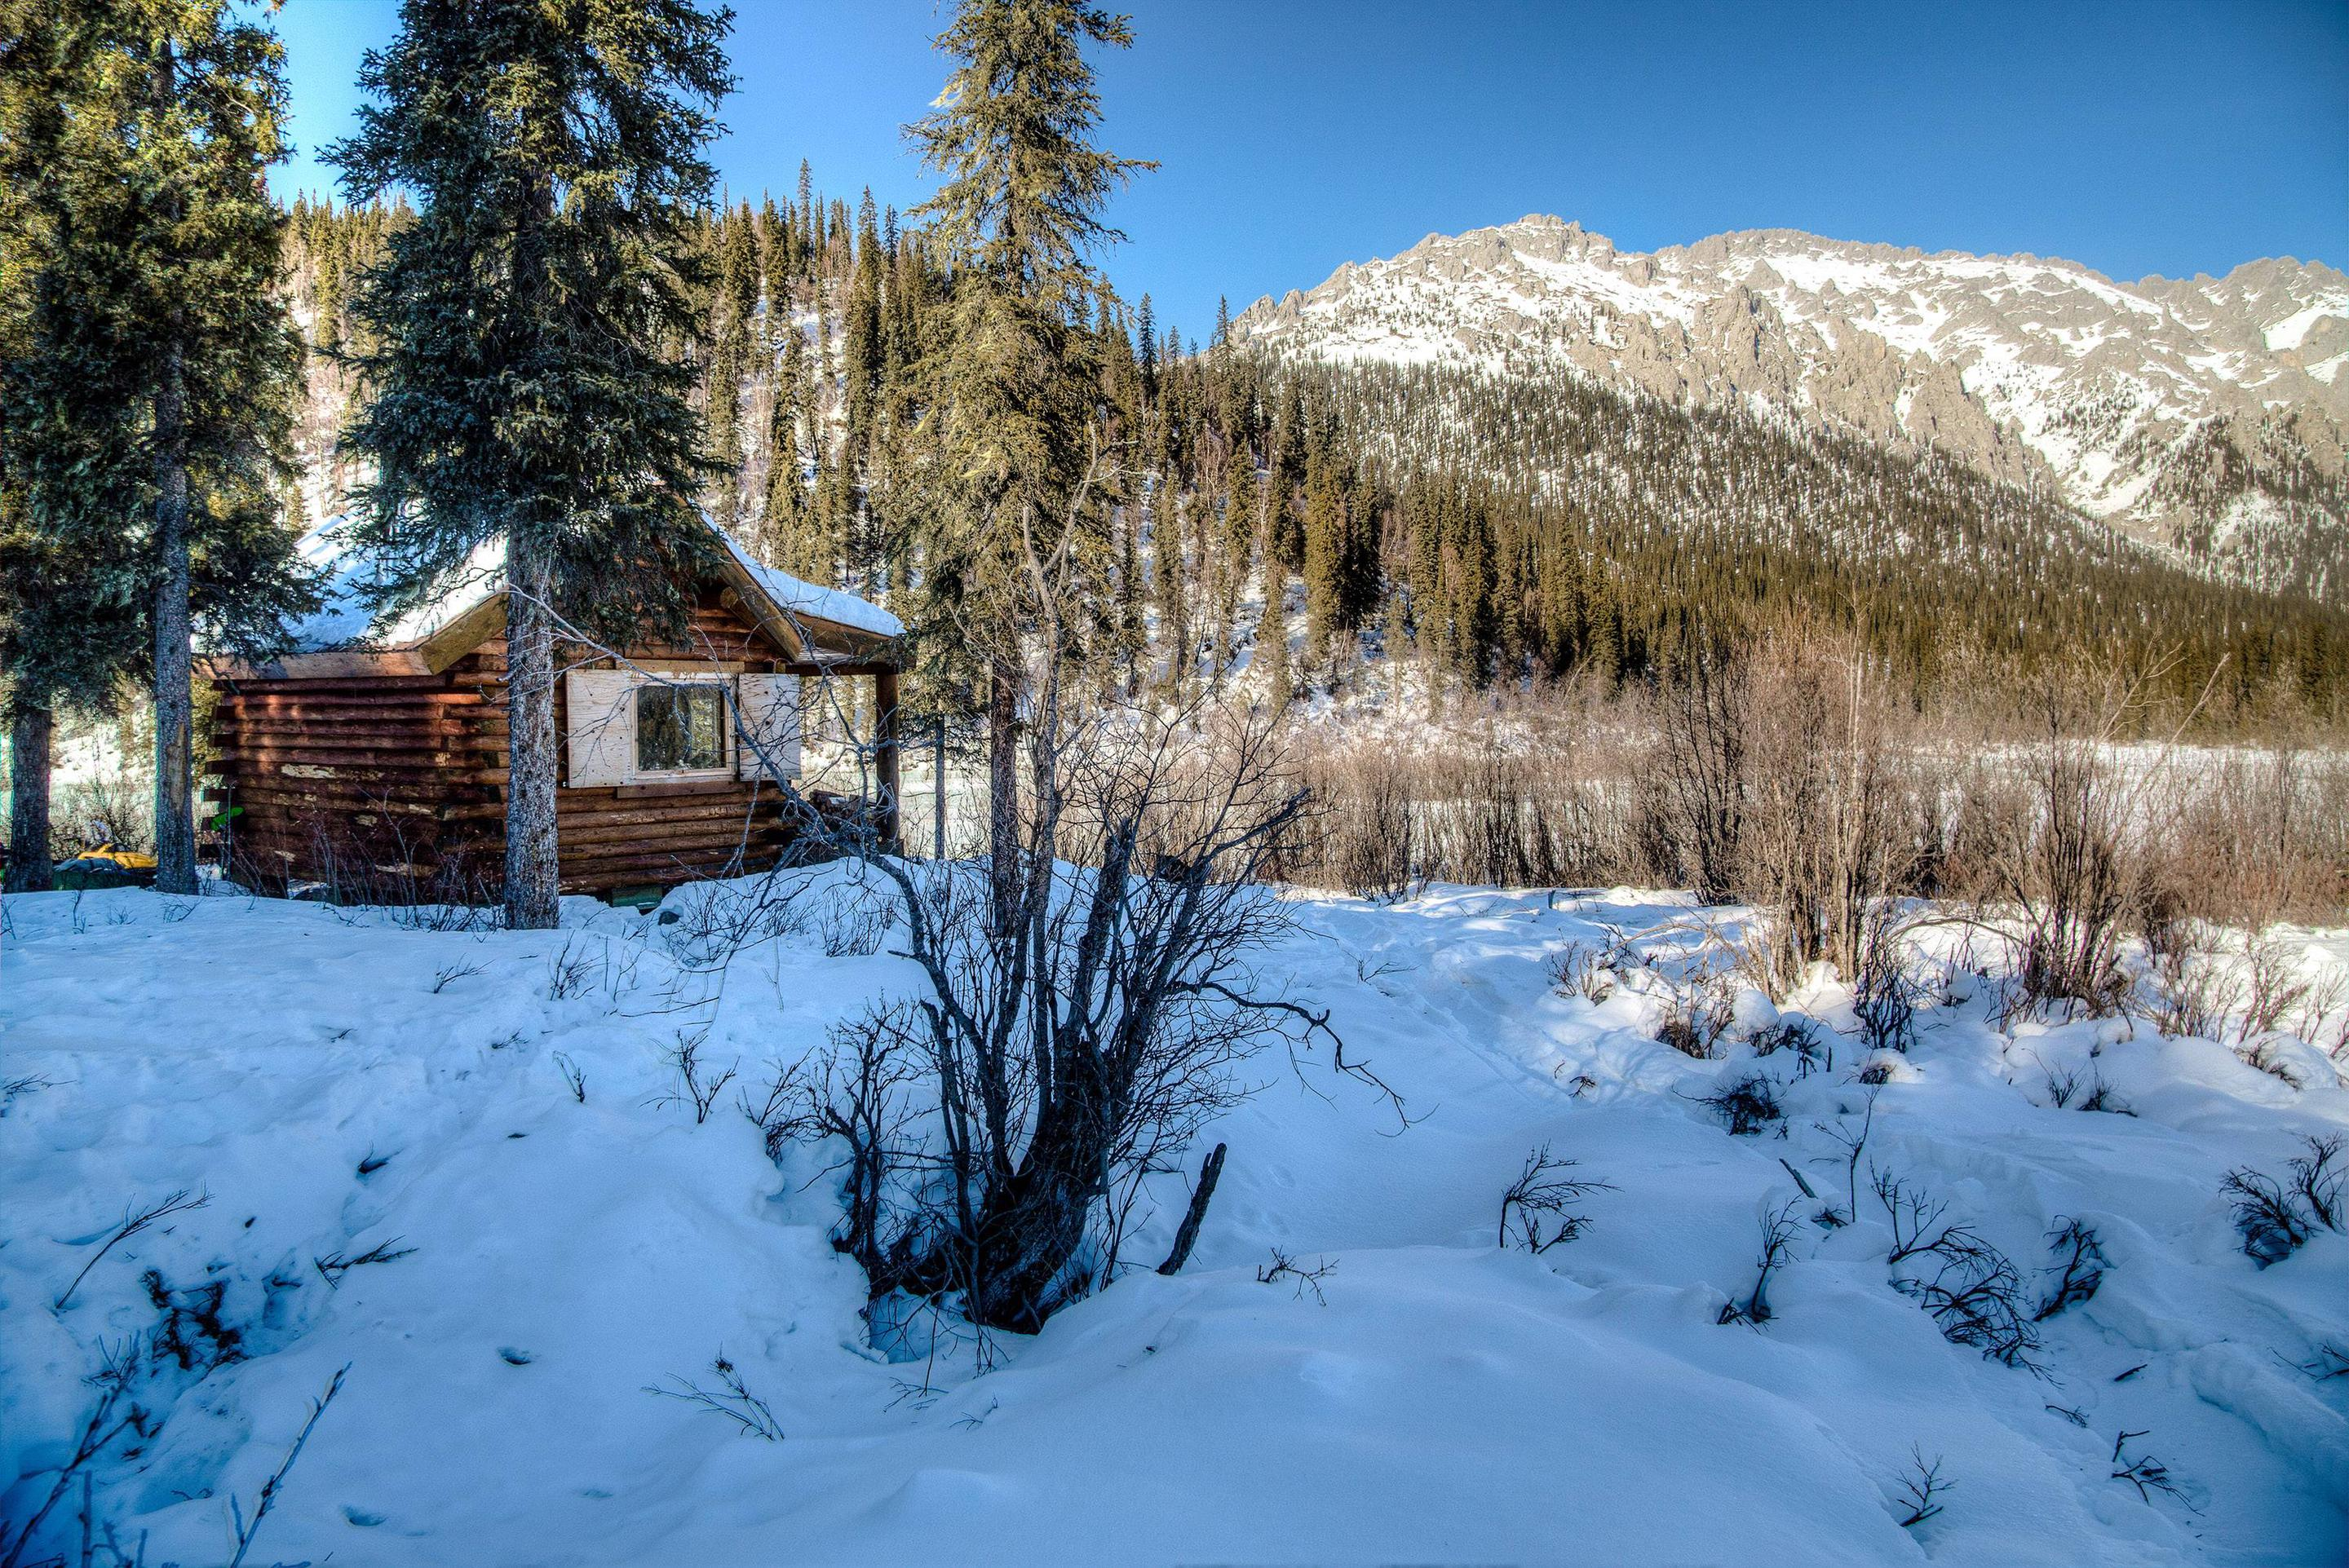 A cabin surrounded by snow in front of a forested and rocky ridgeWindy Gap Cabin and view of limestone ridge